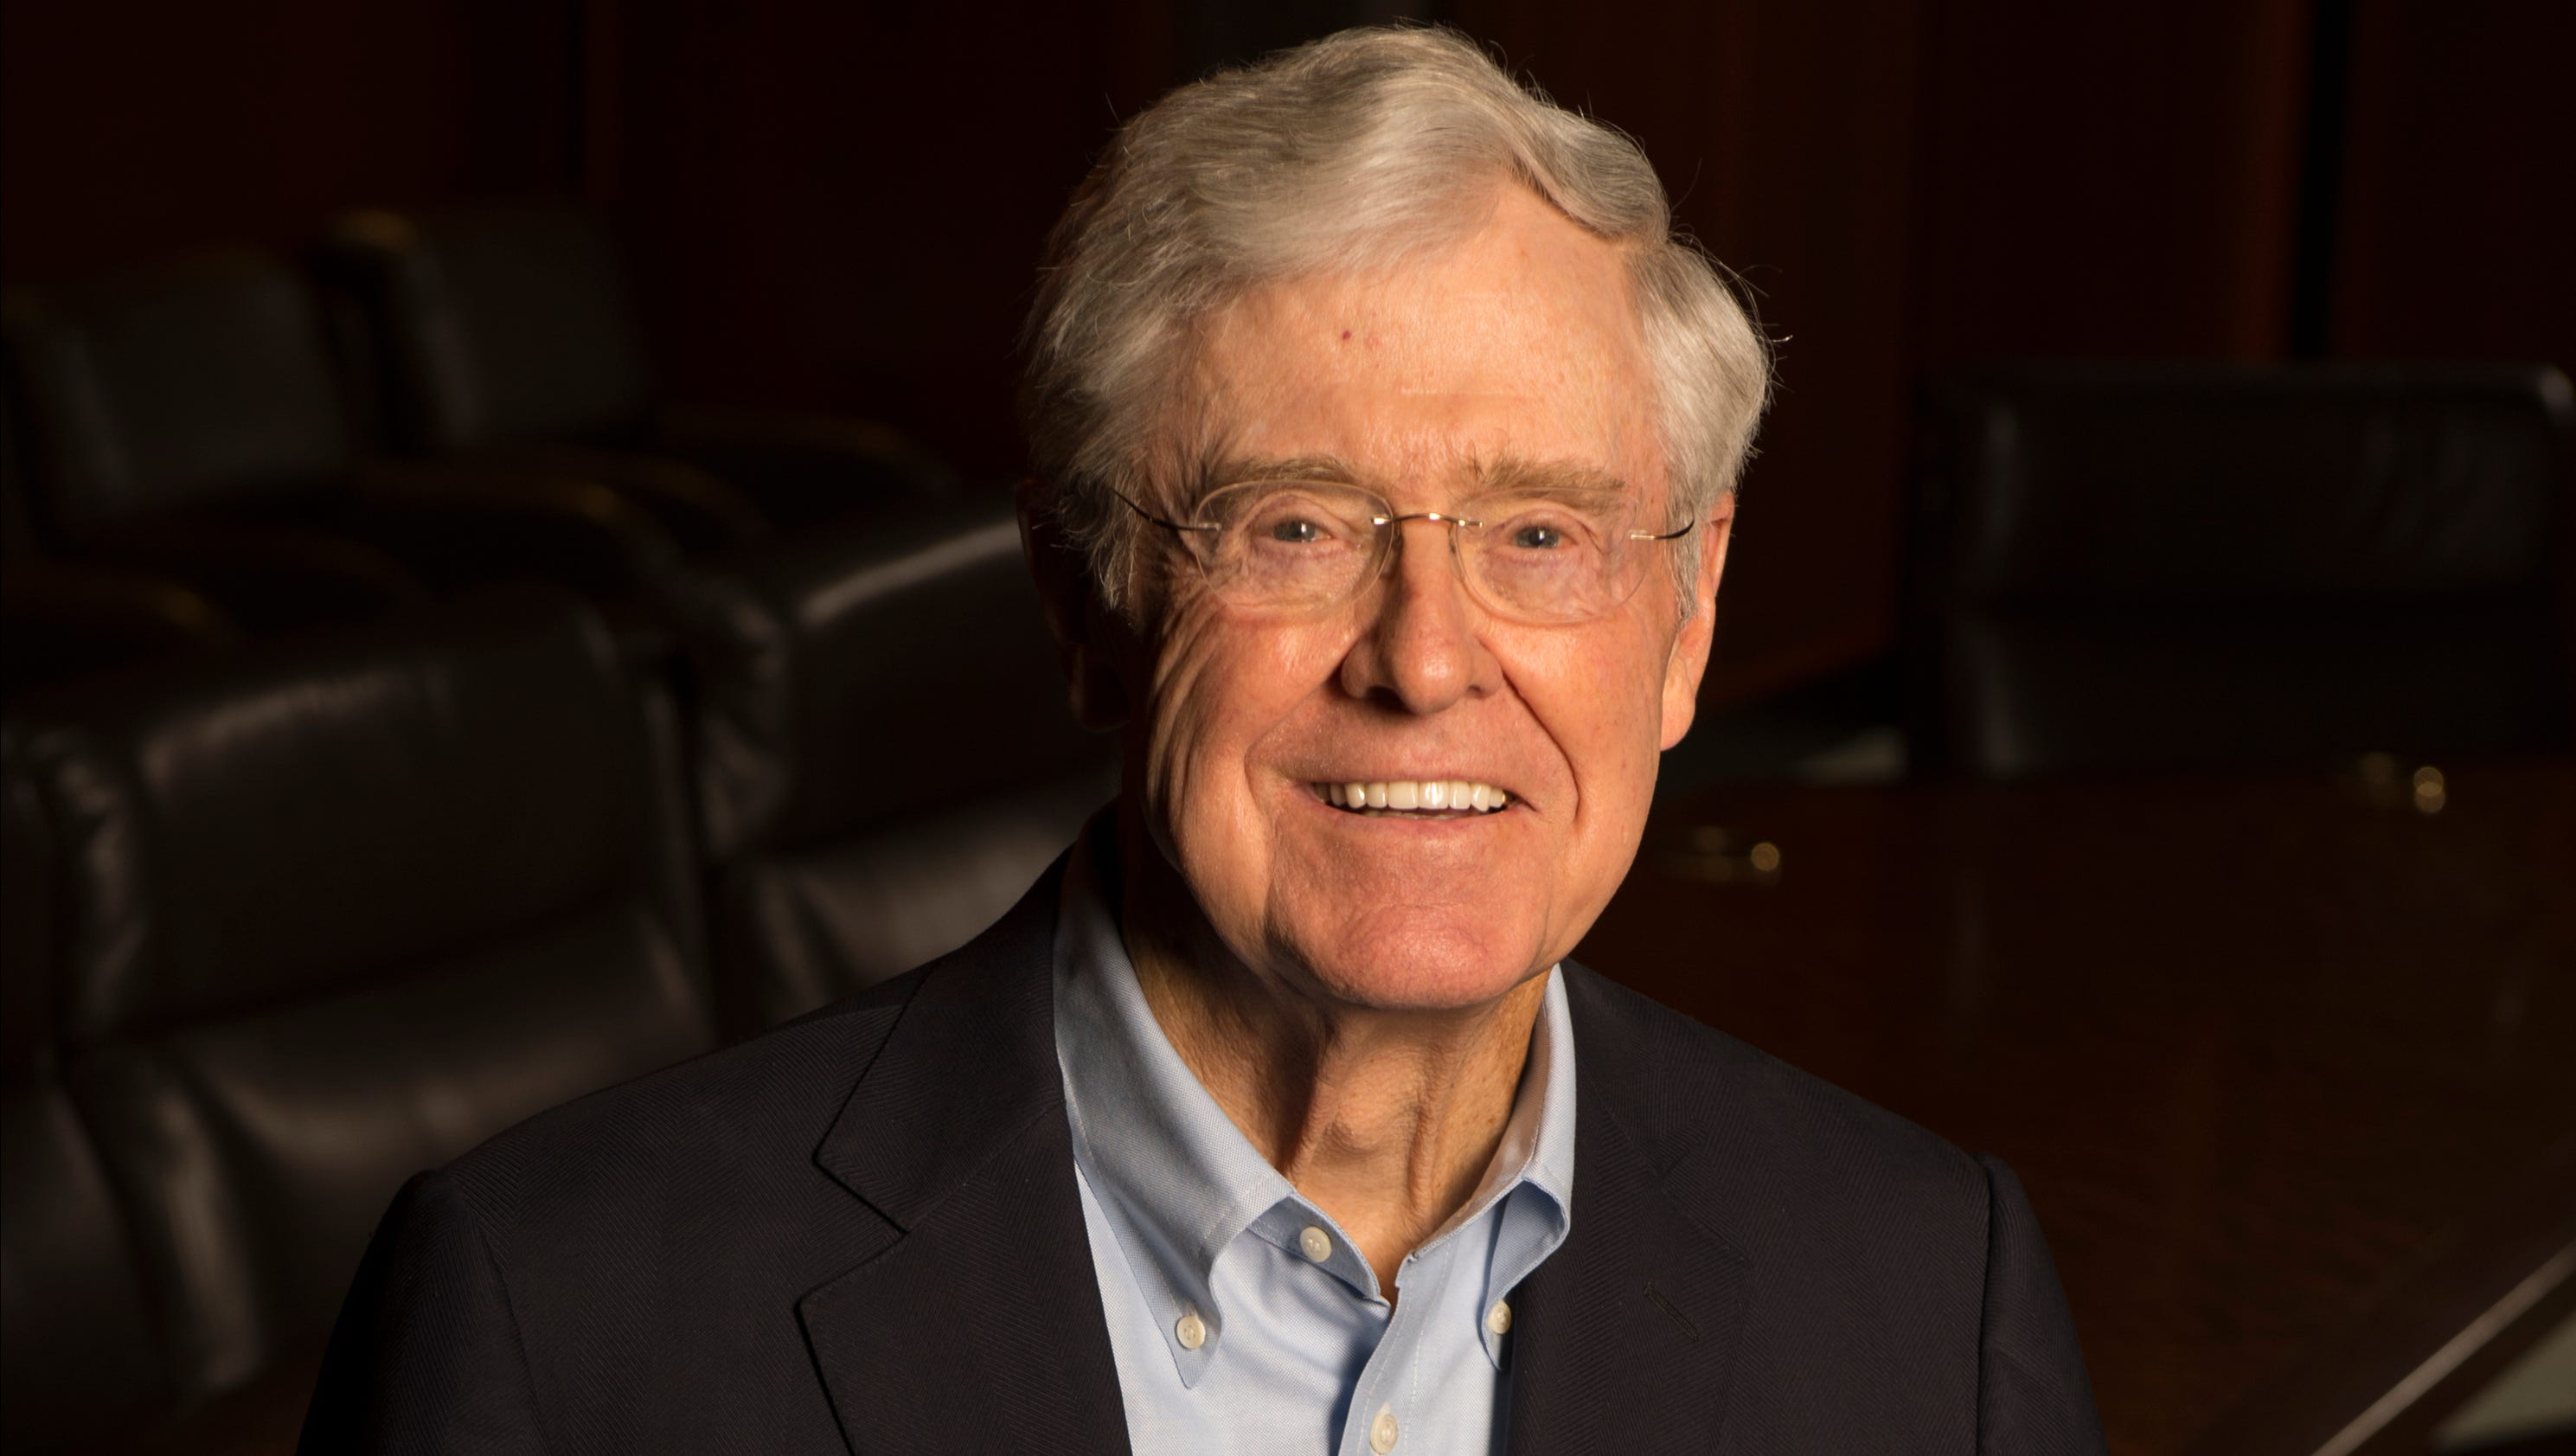 Charles Koch earned a  million dollar salary, leaving the net worth at 50000 million in 2017